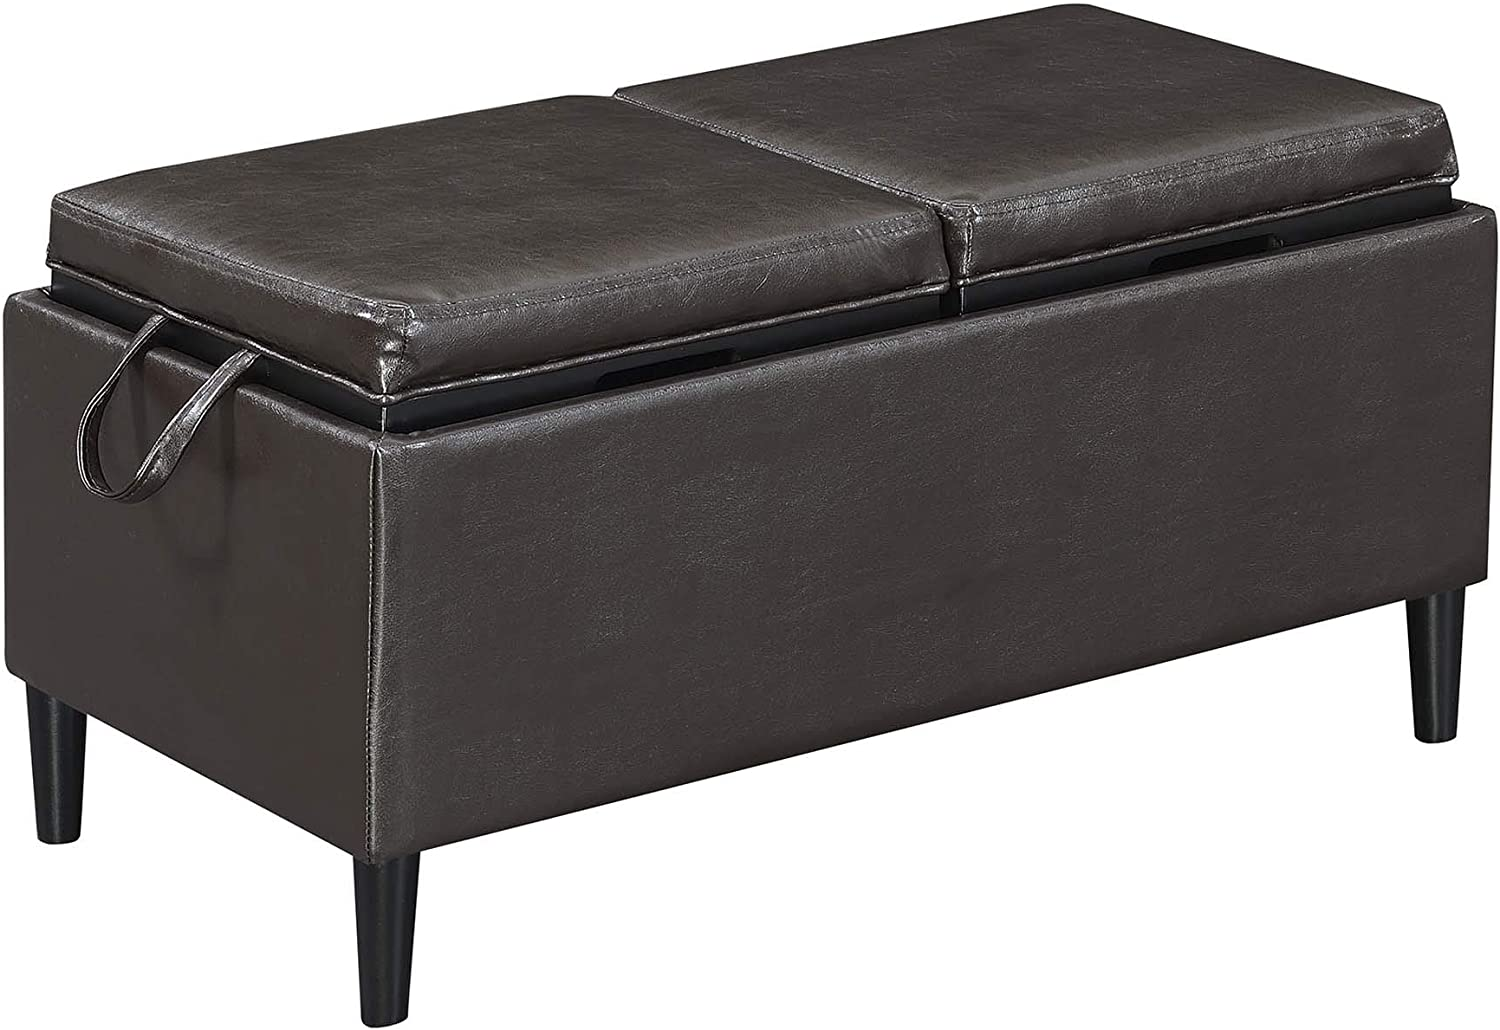 Convenience Concepts Designs4Comfort Magnolia Storage Ottoman with Trays, Espresso Faux Leather